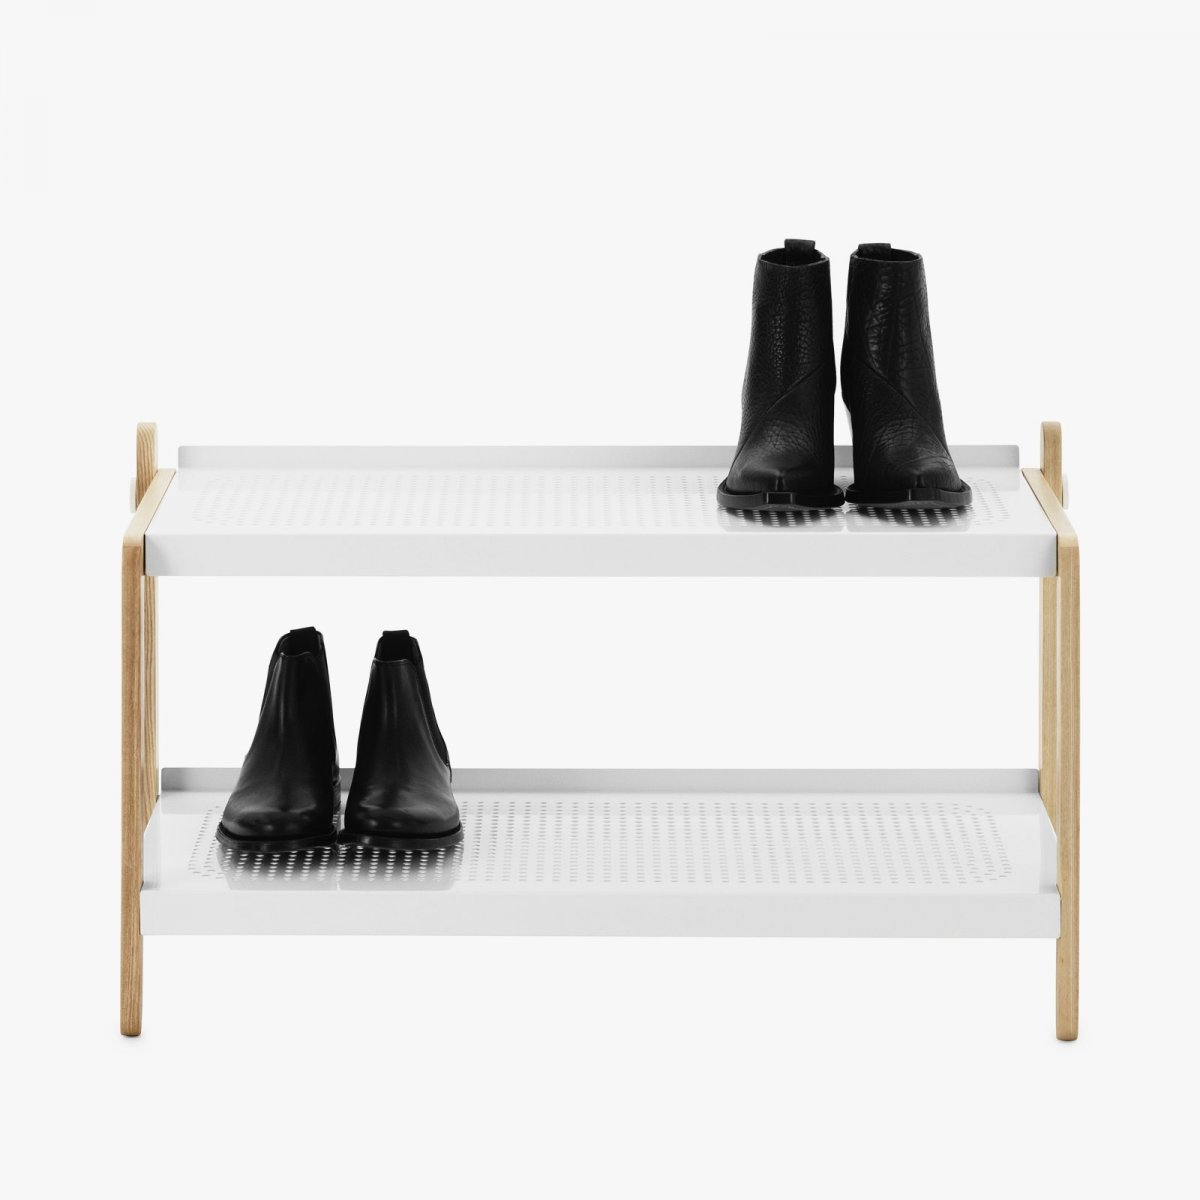 Sko Shoe Rack in white.